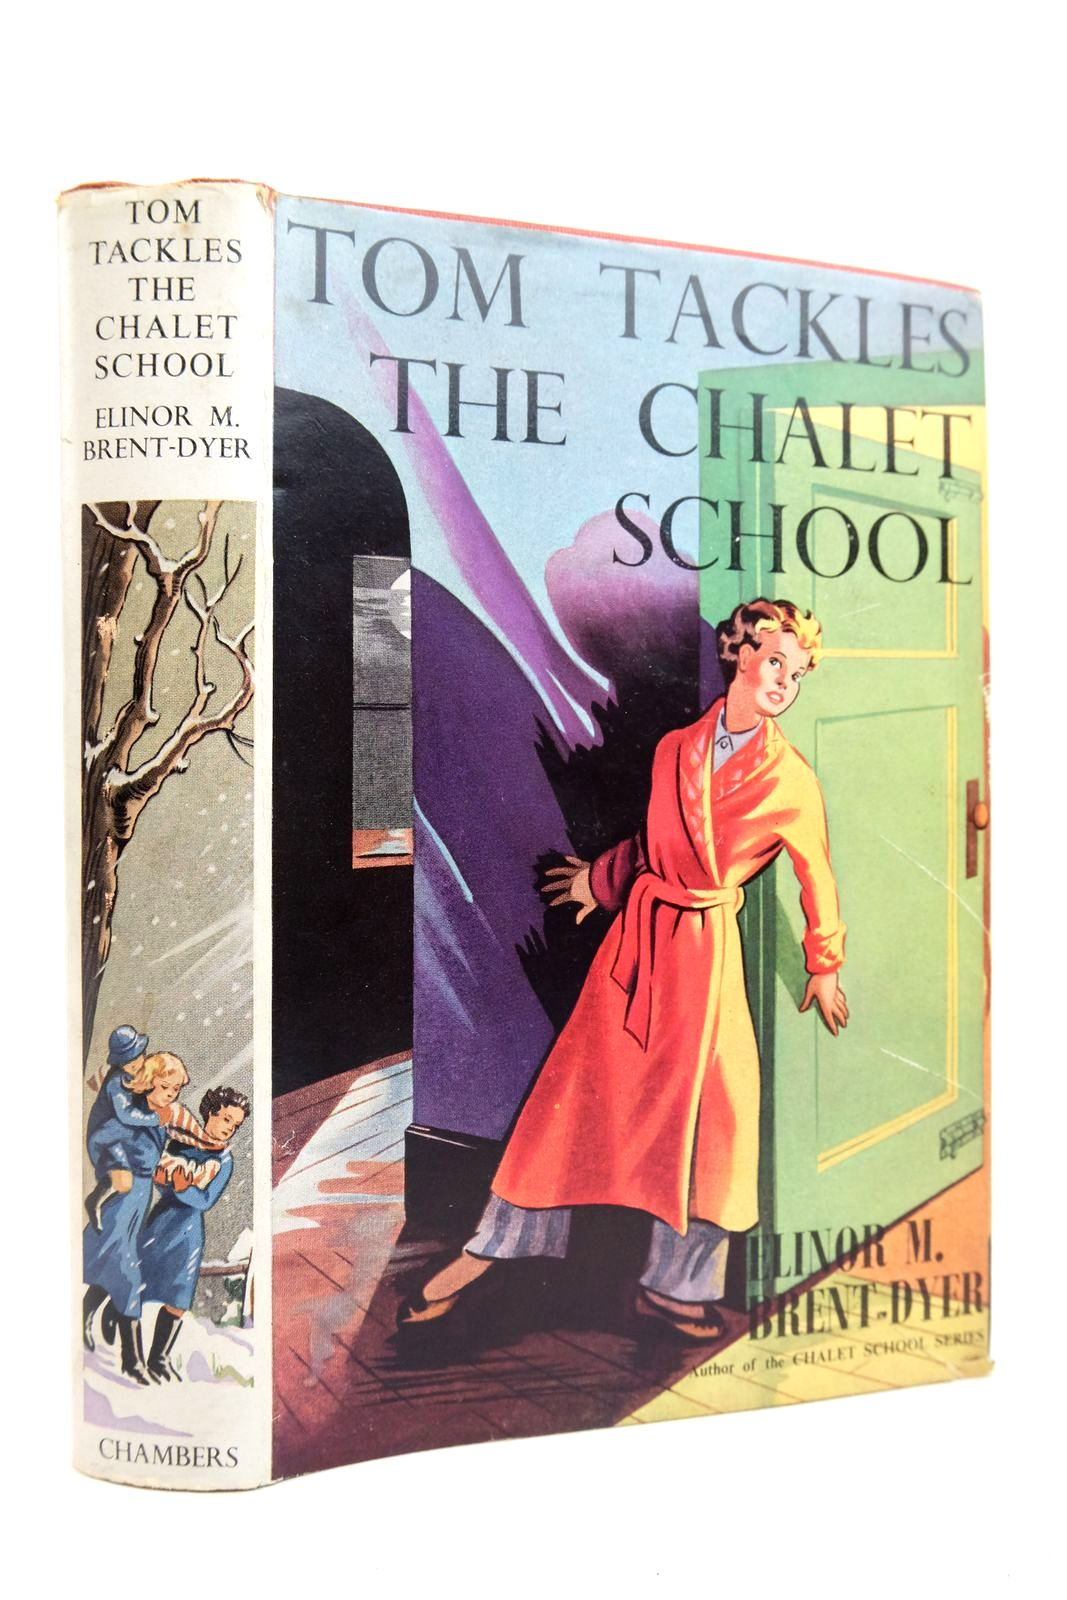 Photo of TOM TACKLES THE CHALET SCHOOL written by Brent-Dyer, Elinor M. published by W. & R. Chambers Limited (STOCK CODE: 2135222)  for sale by Stella & Rose's Books